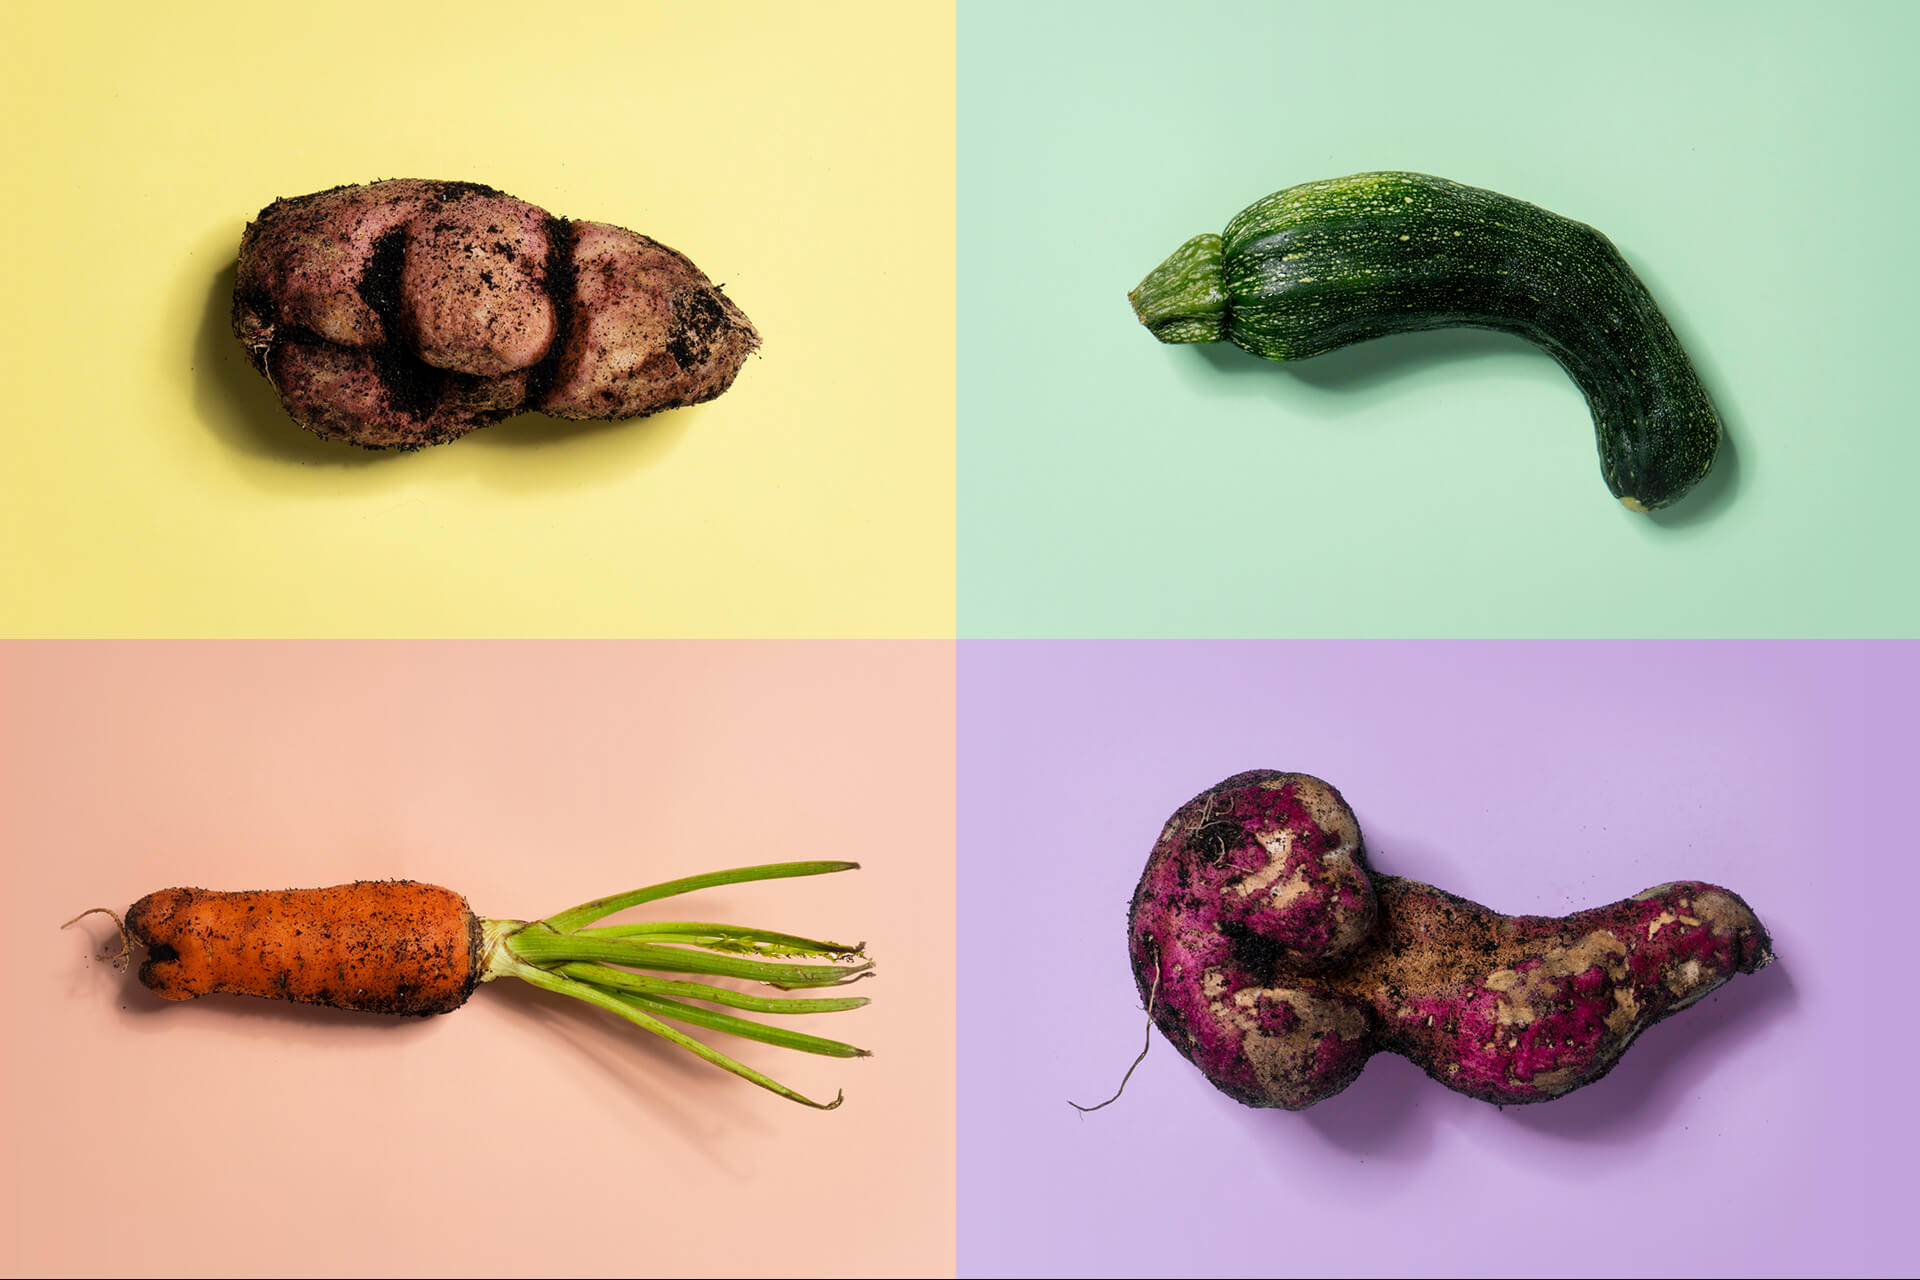 Millions of pounds of food continue to go to waste, often due to their physical appearance. But why should looks be so important for food that's valued for its nutrition?